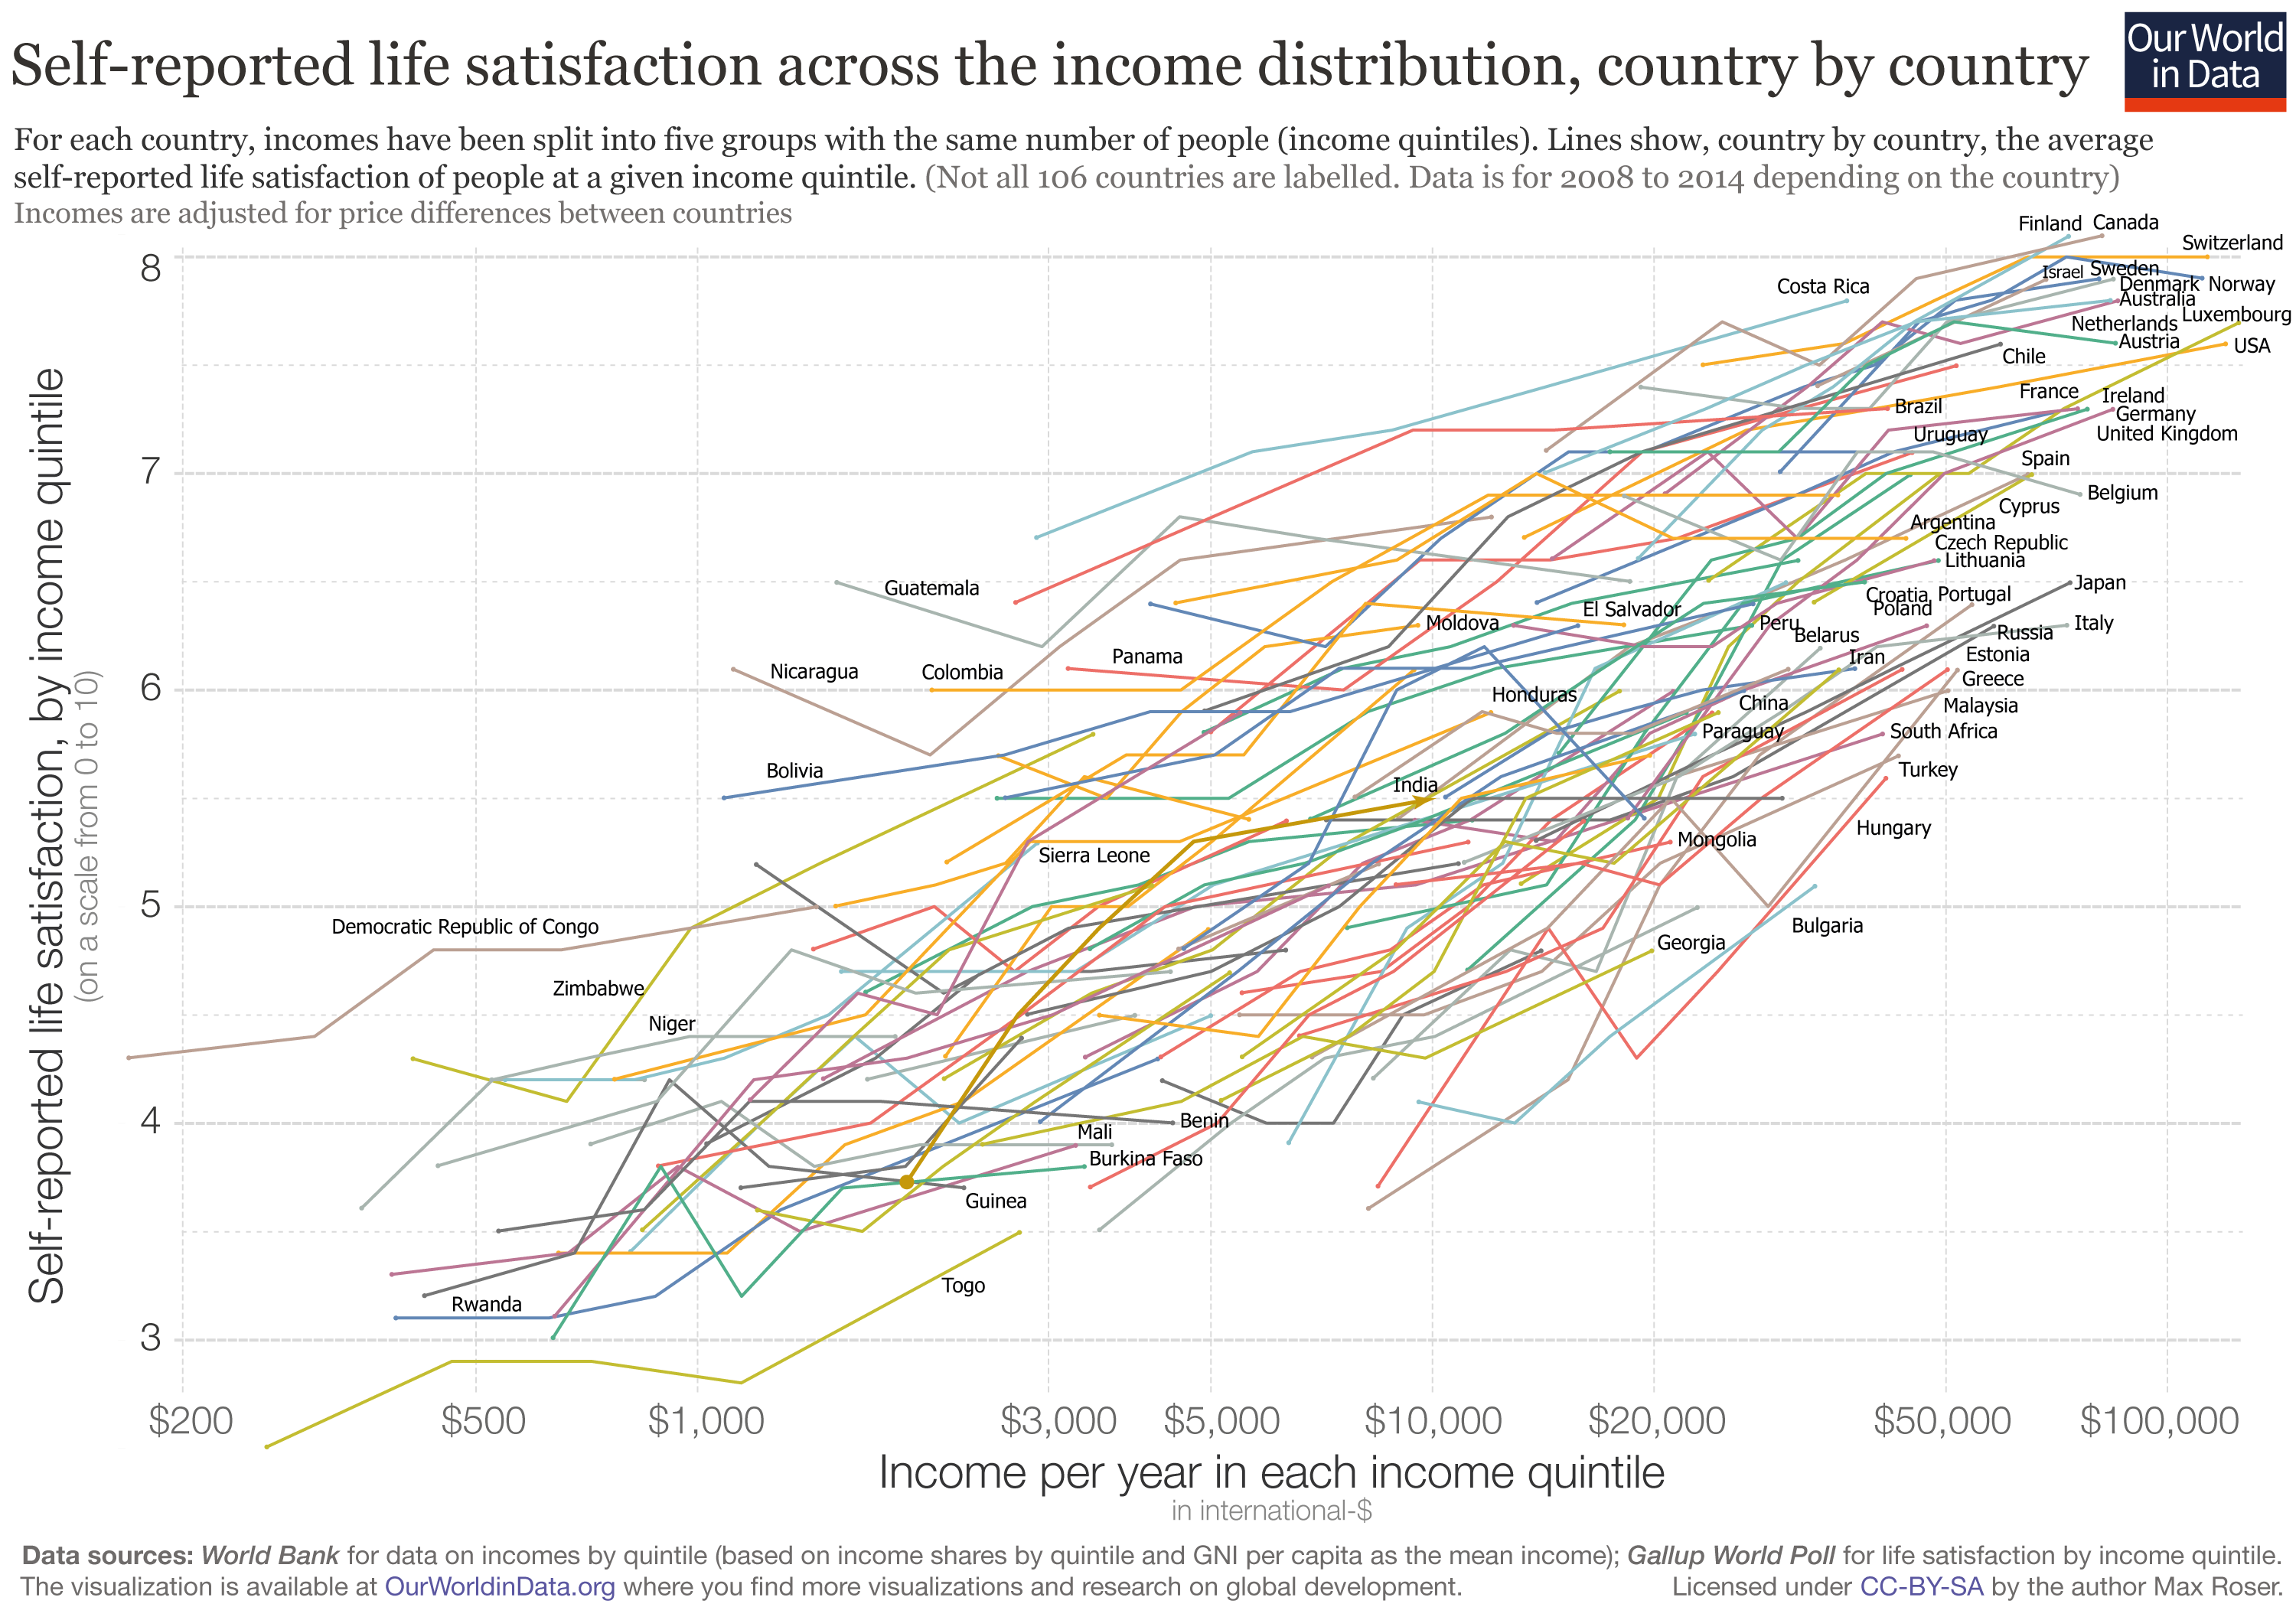 Self-reported life satisfactino across the income distribution, country by country